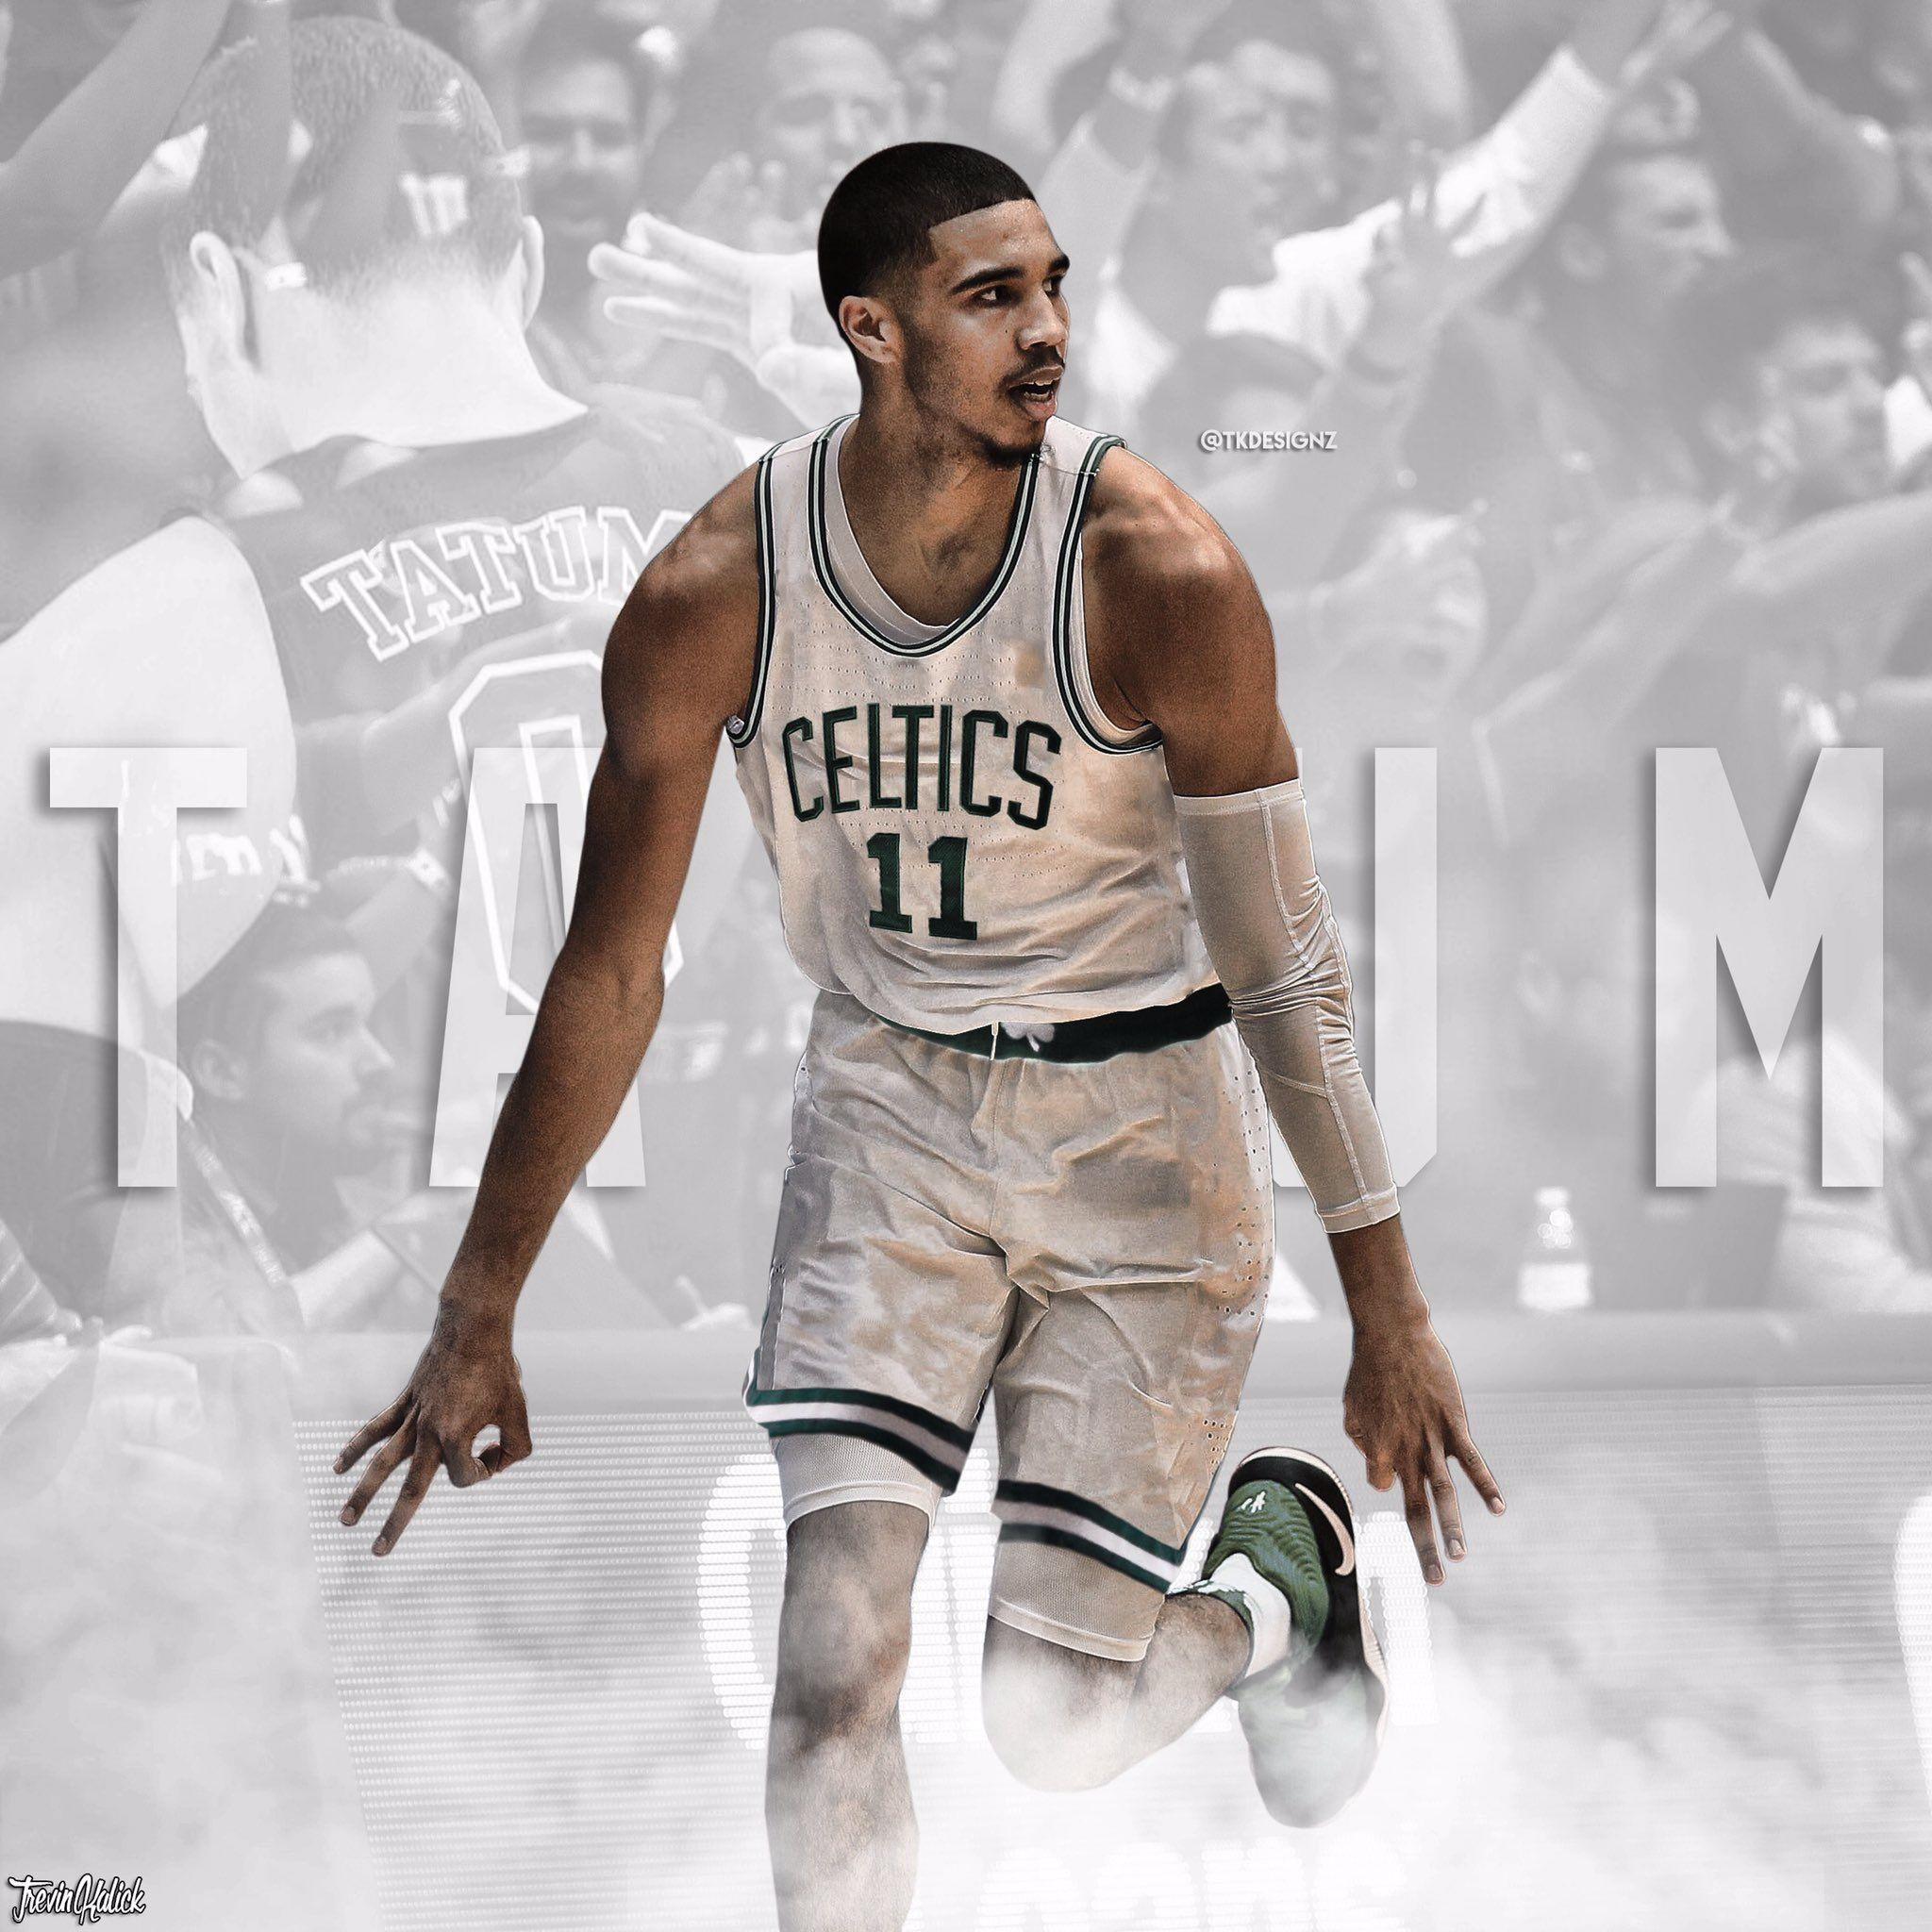 Basketball Iphone Wallpapers: Jayson Tatum Wallpapers